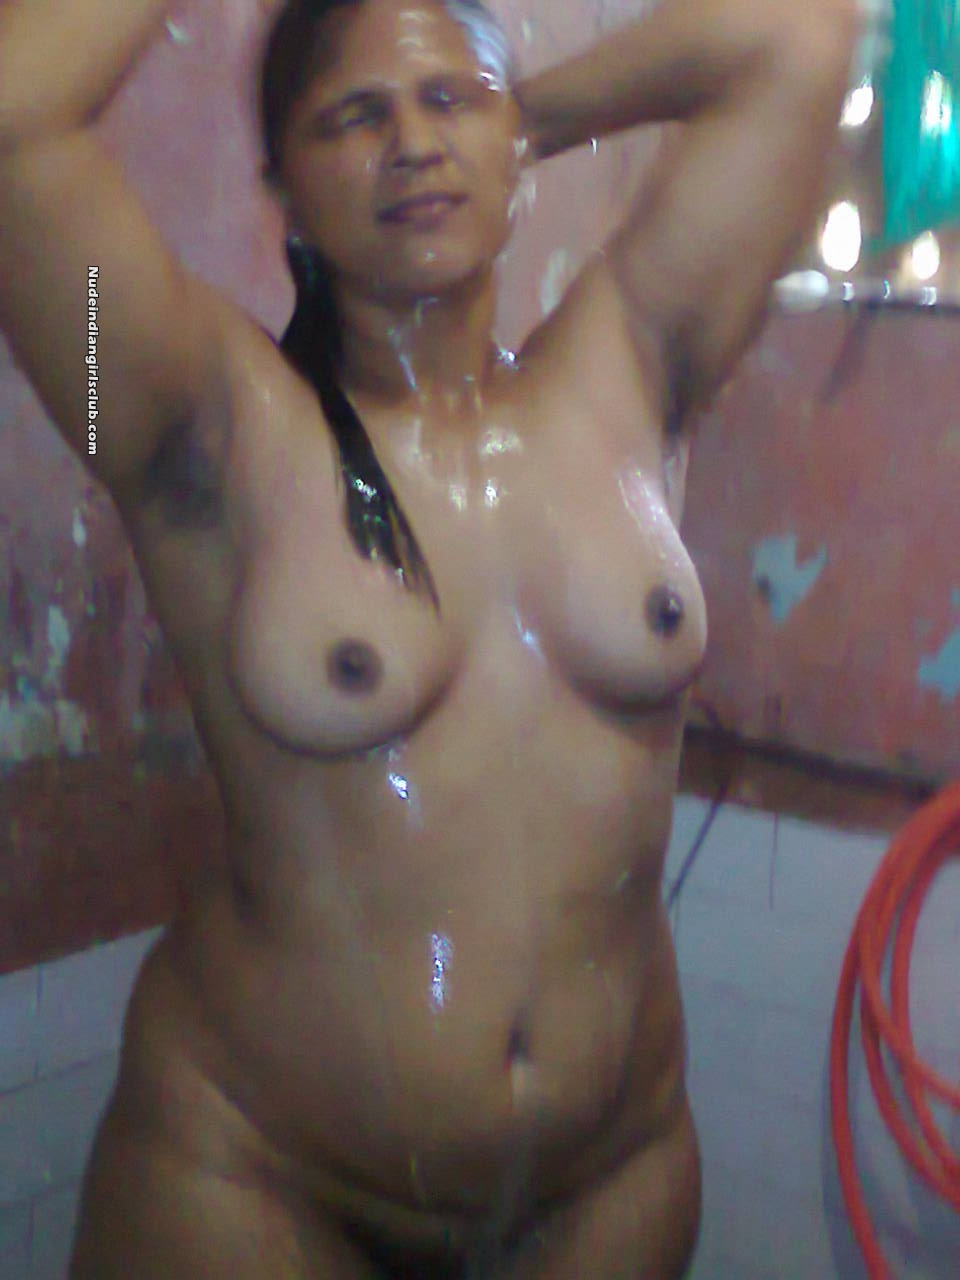 Desi Indian Maid Girl Fully Nude Bath At Bathroom Nude -3345